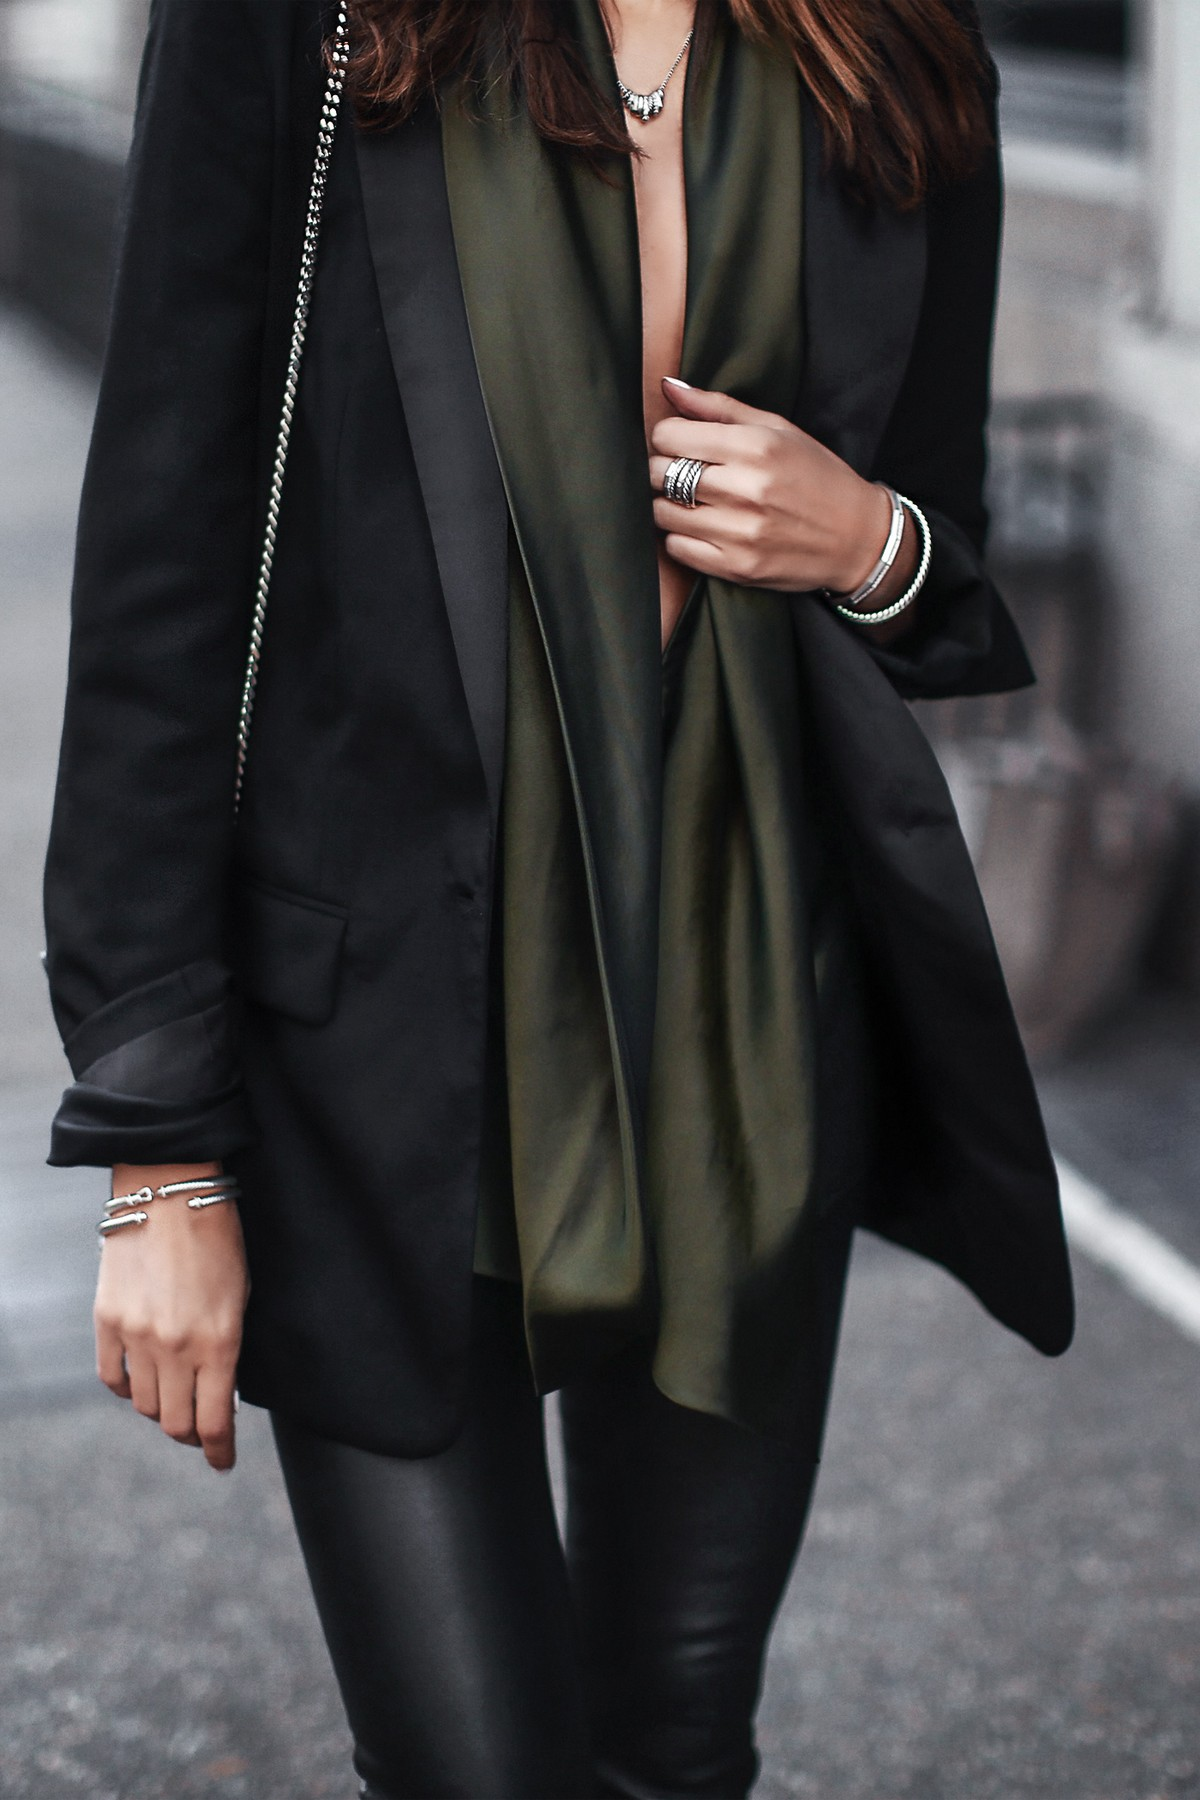 army green satin top, blazer, silver jewelry